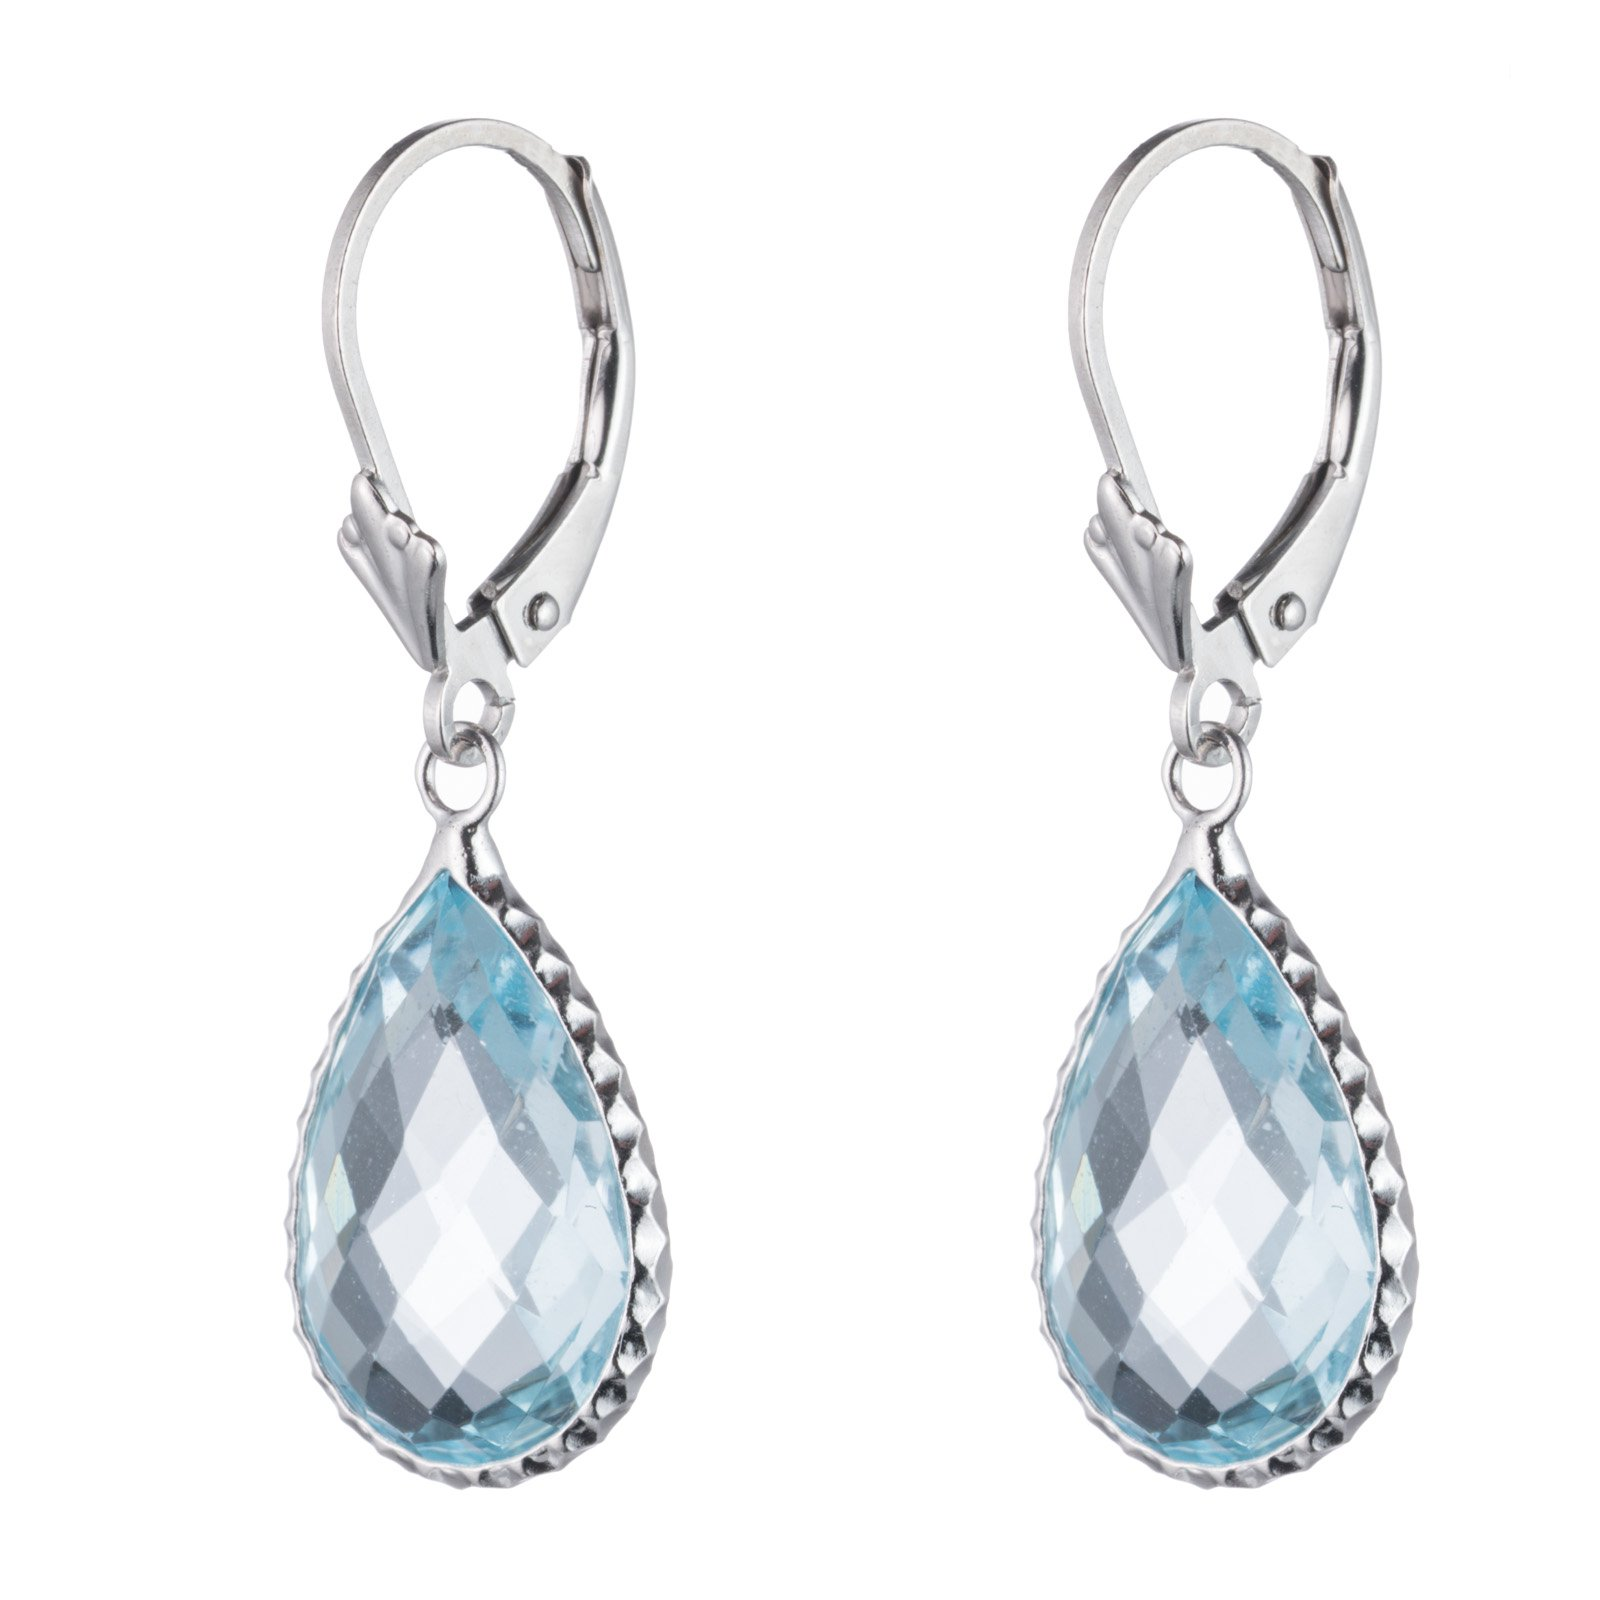 Sterling Silver Genuine Blue topaz Stone Earring, Lever Back Closure, Pear shape, Bezel wired by Glad Gold (Image #2)